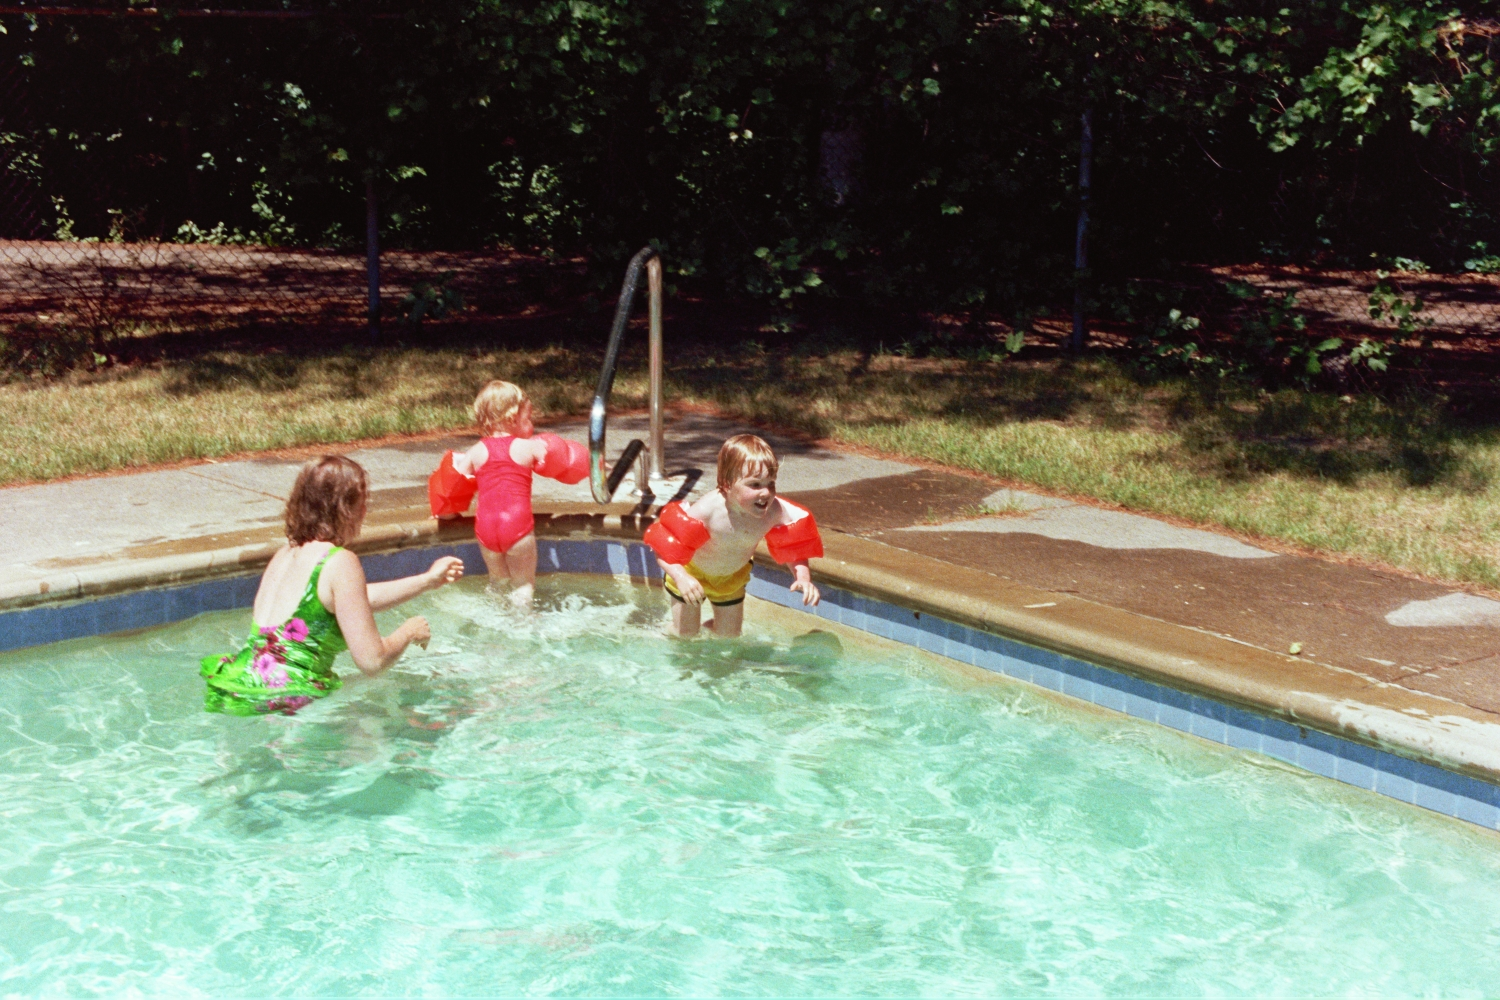 Lori, Amy, Russel & Matt Shearer in the pool at Huntinton Hills, Rochester, NY, USA